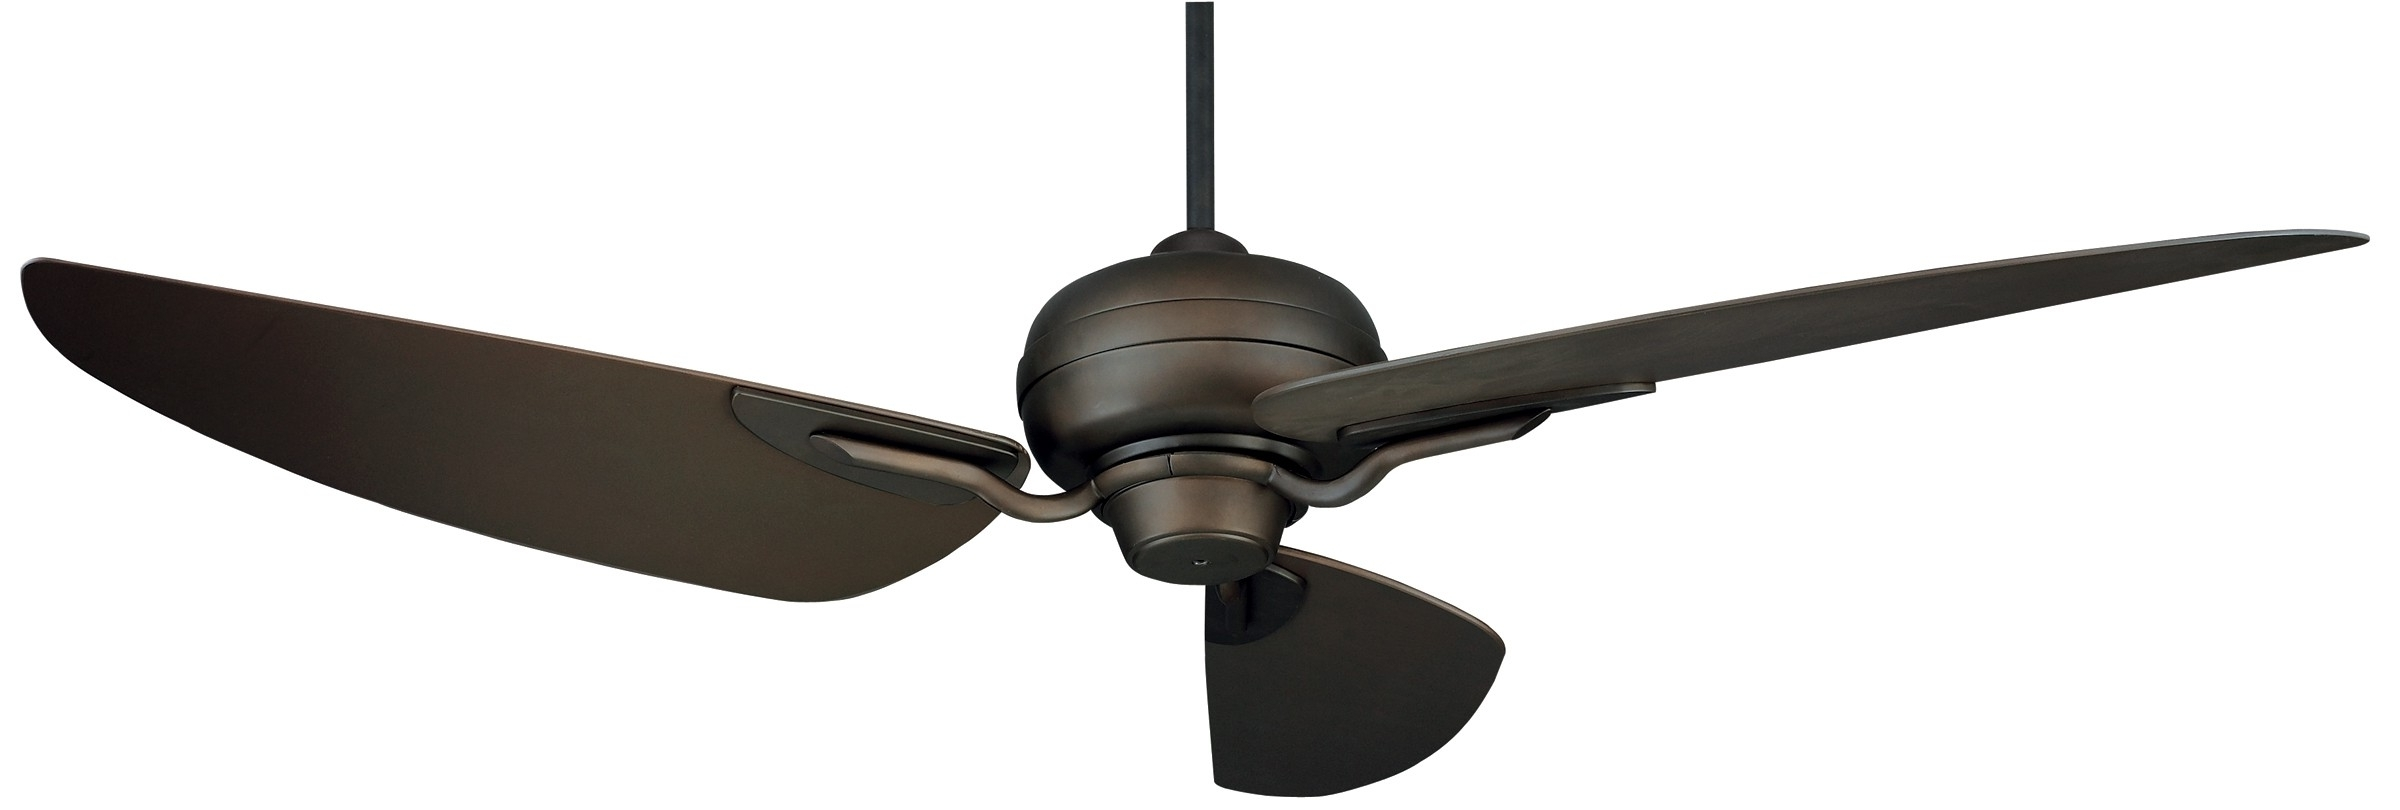 Fashionable Outdoor Ceiling Fans For Wet Areas With Regard To Bimini (Wet Location), Best Outdoor Ceiling Fans – Cliff Drive (View 5 of 20)